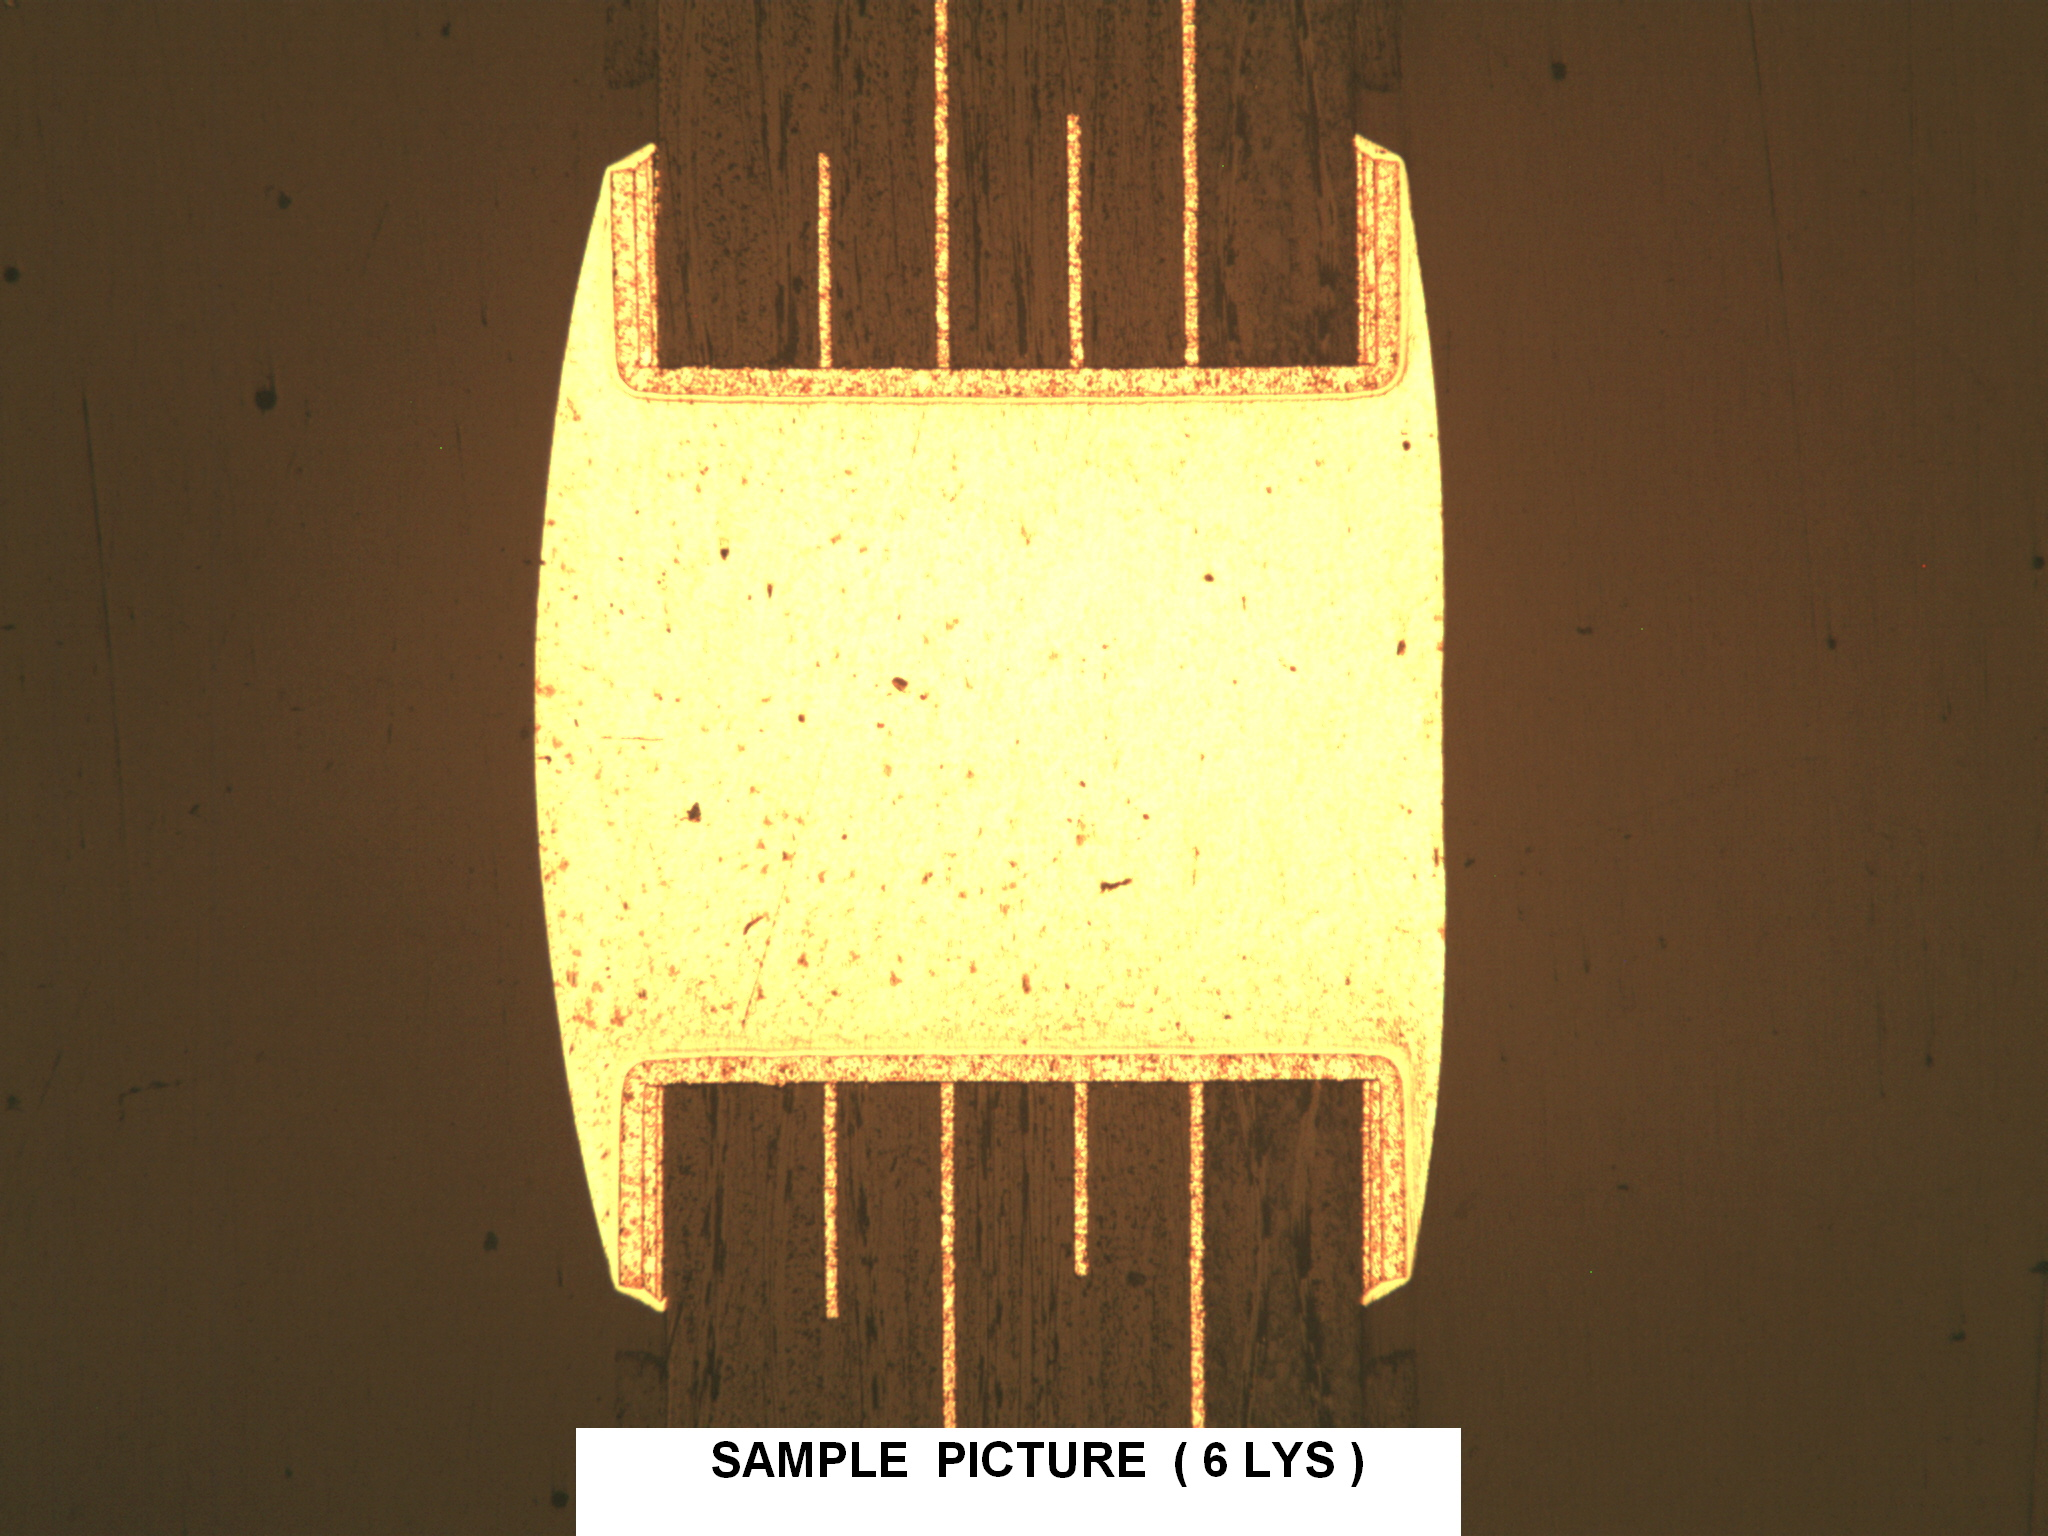 PCB Cross-Section Analysis: A Microscopic Visual Validation of PCBs